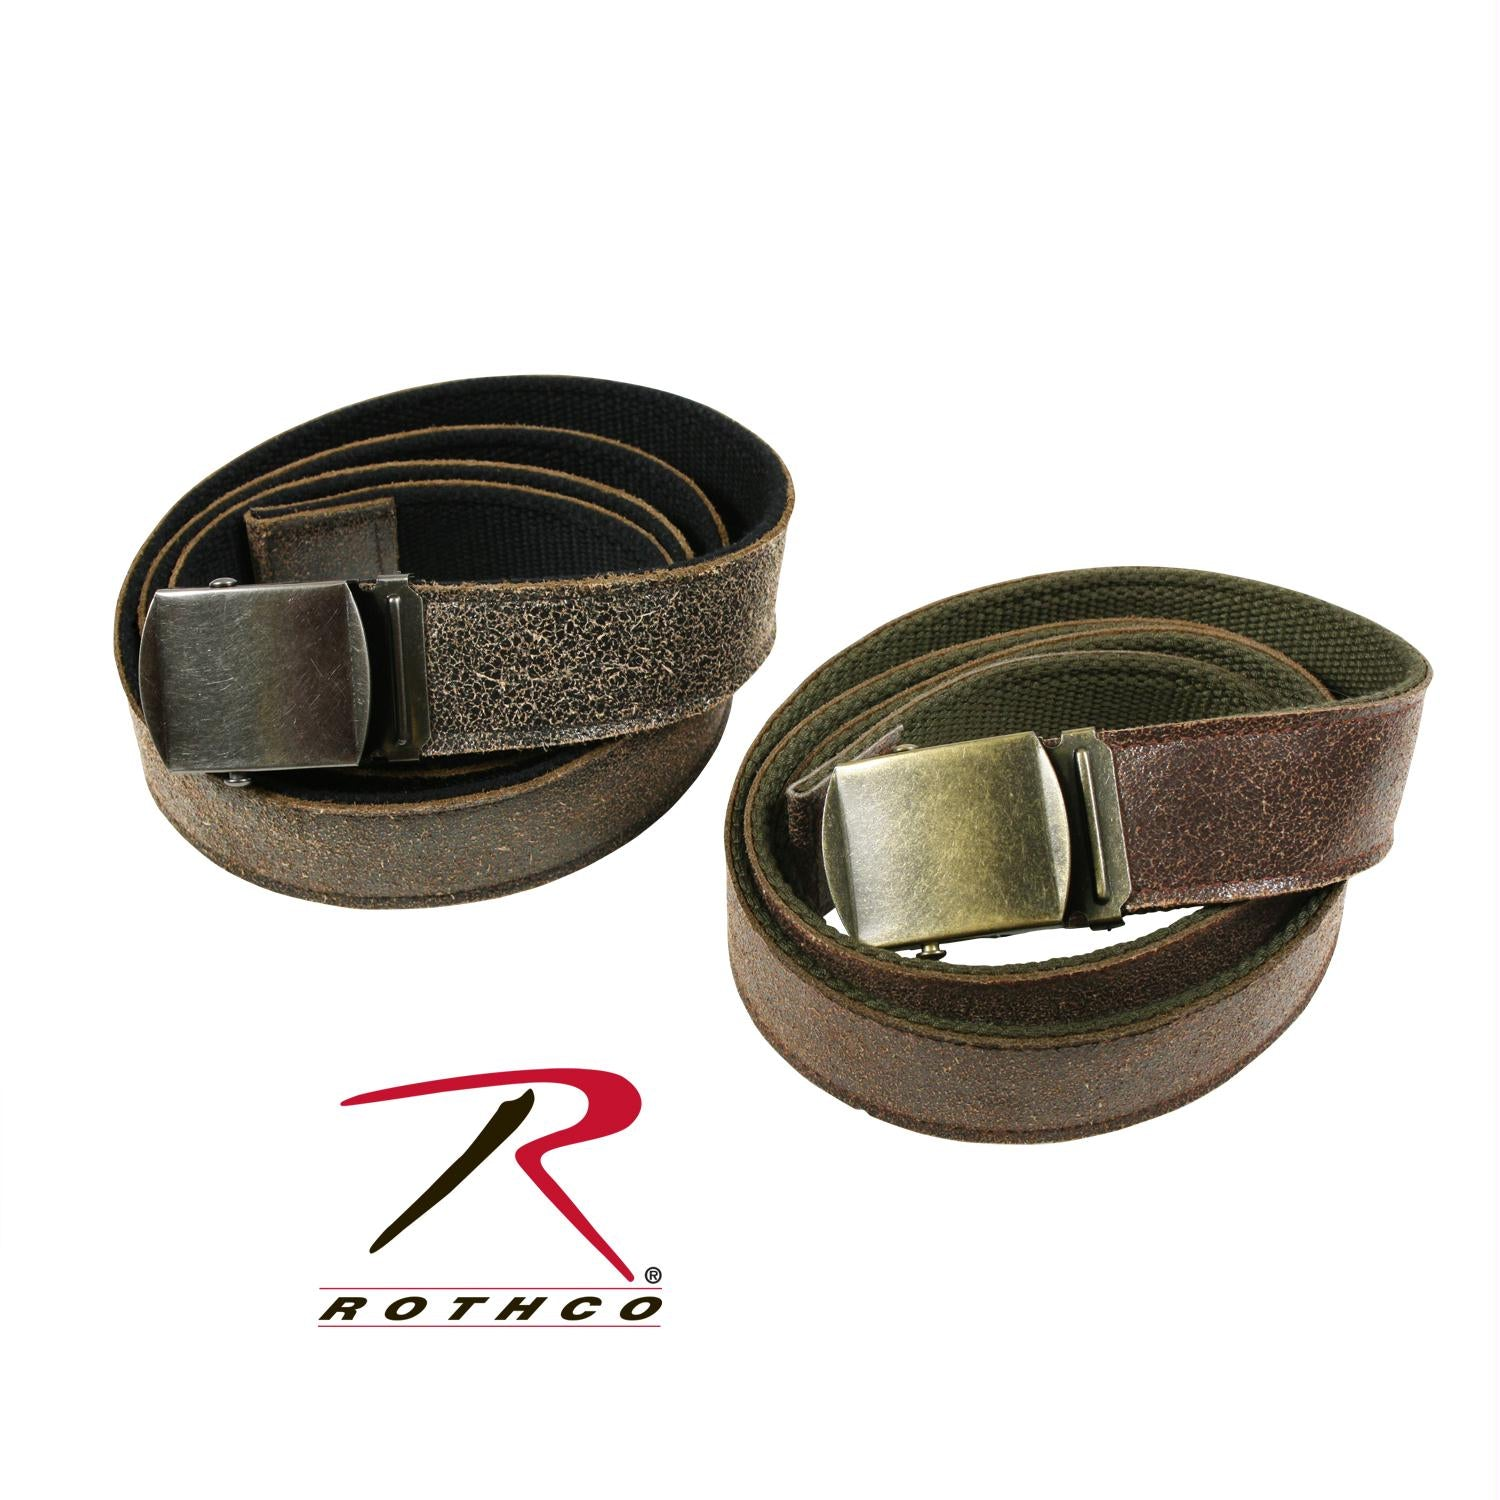 Rothco Reversible Vintage Leather/Poly Web Belt - Black Leather / Black Poly / 54 Inches